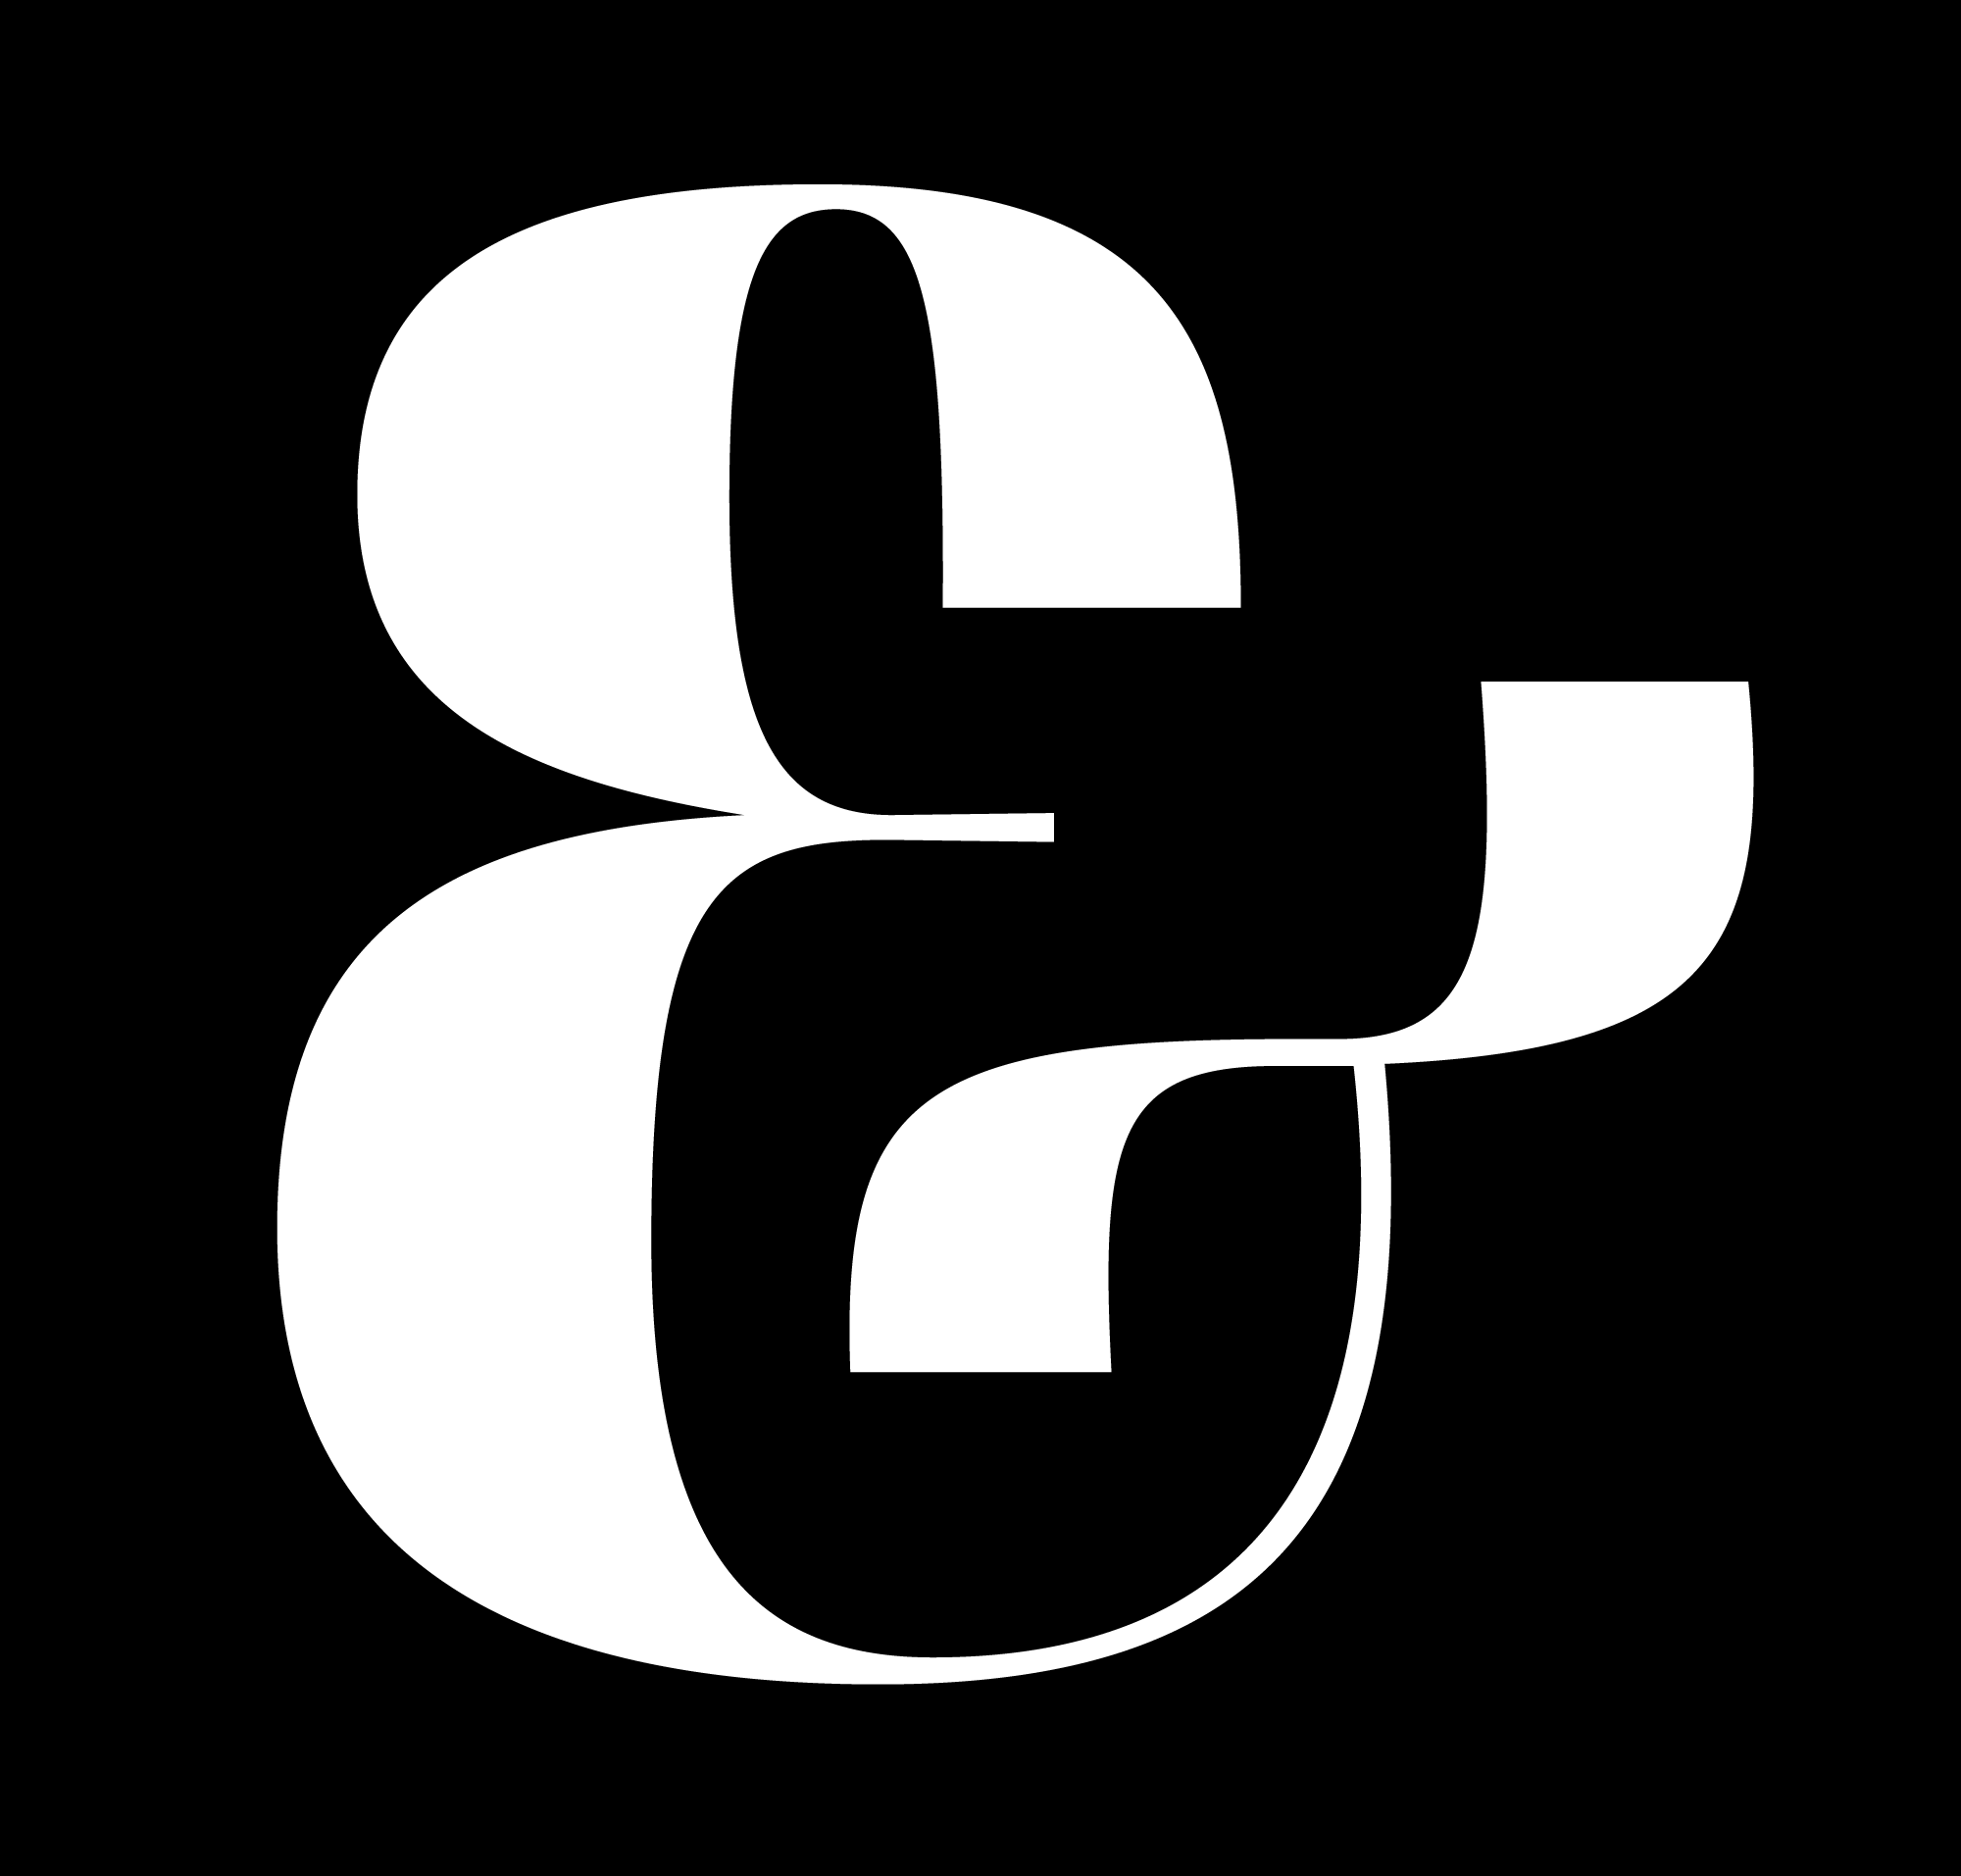 Alternate ampersand